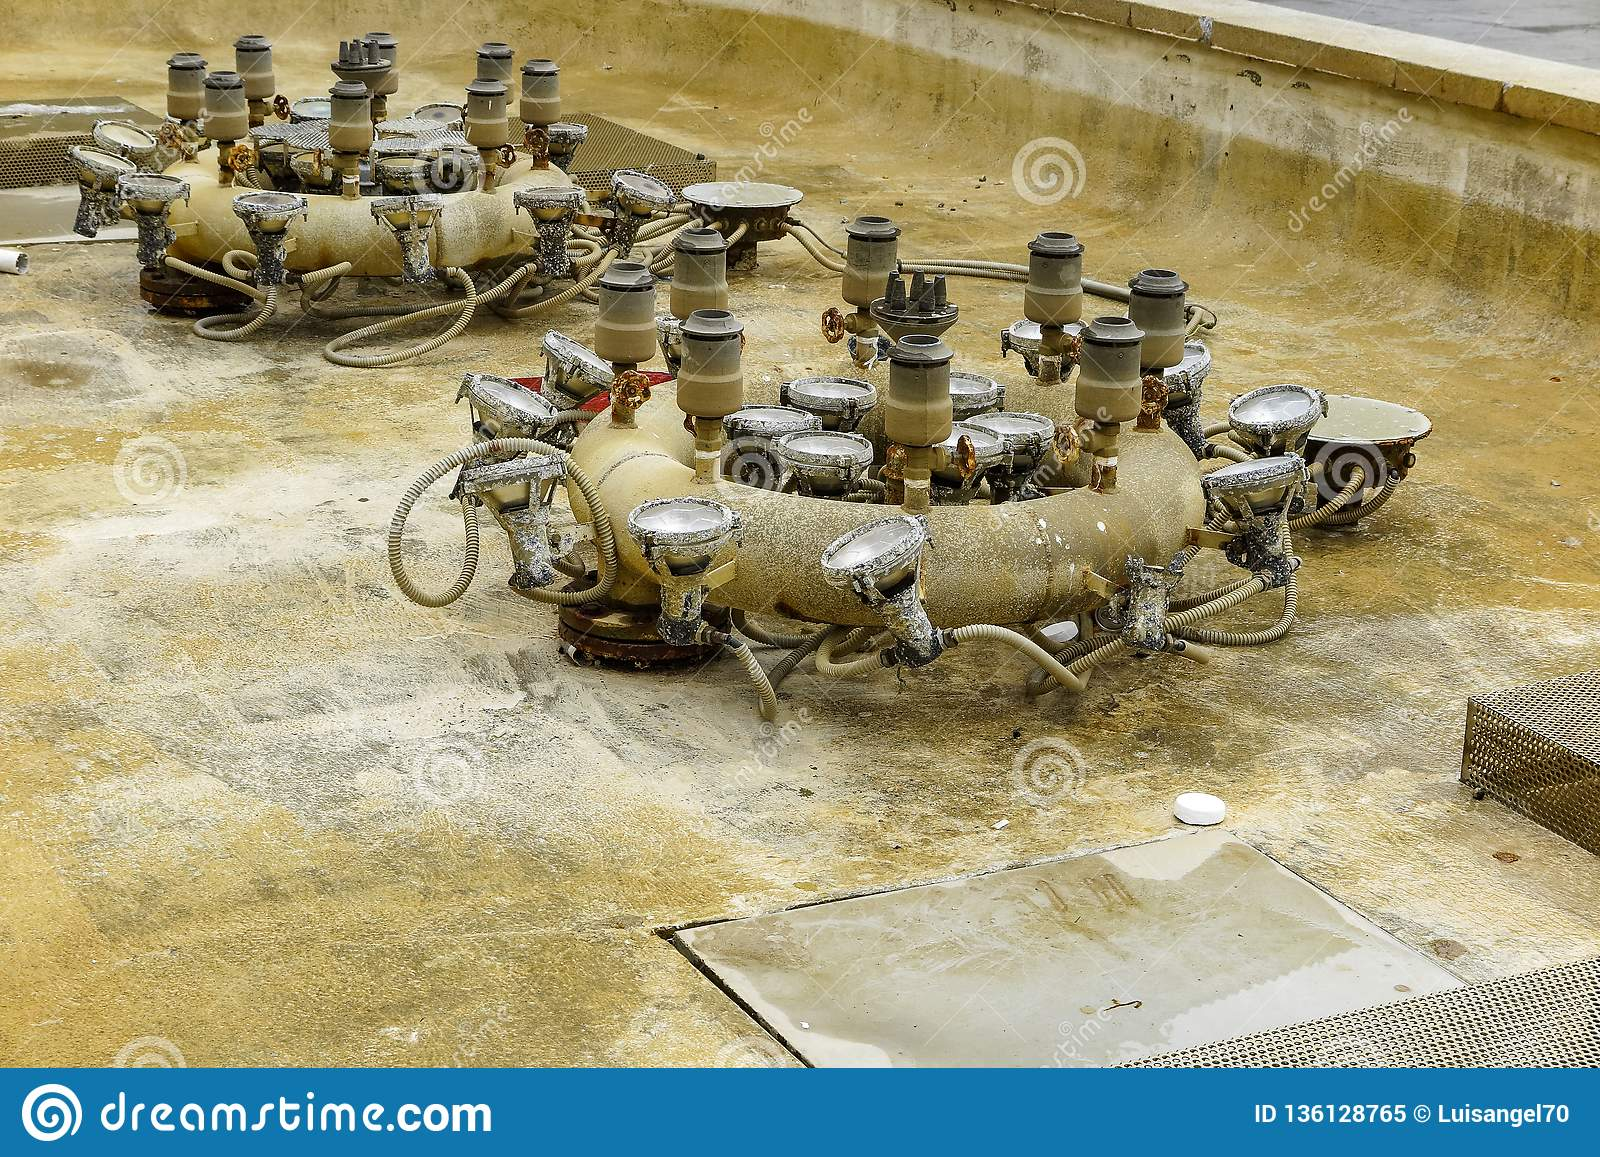 Pipe System And Lights In An Empty Fountain Stock Image   Image of ...